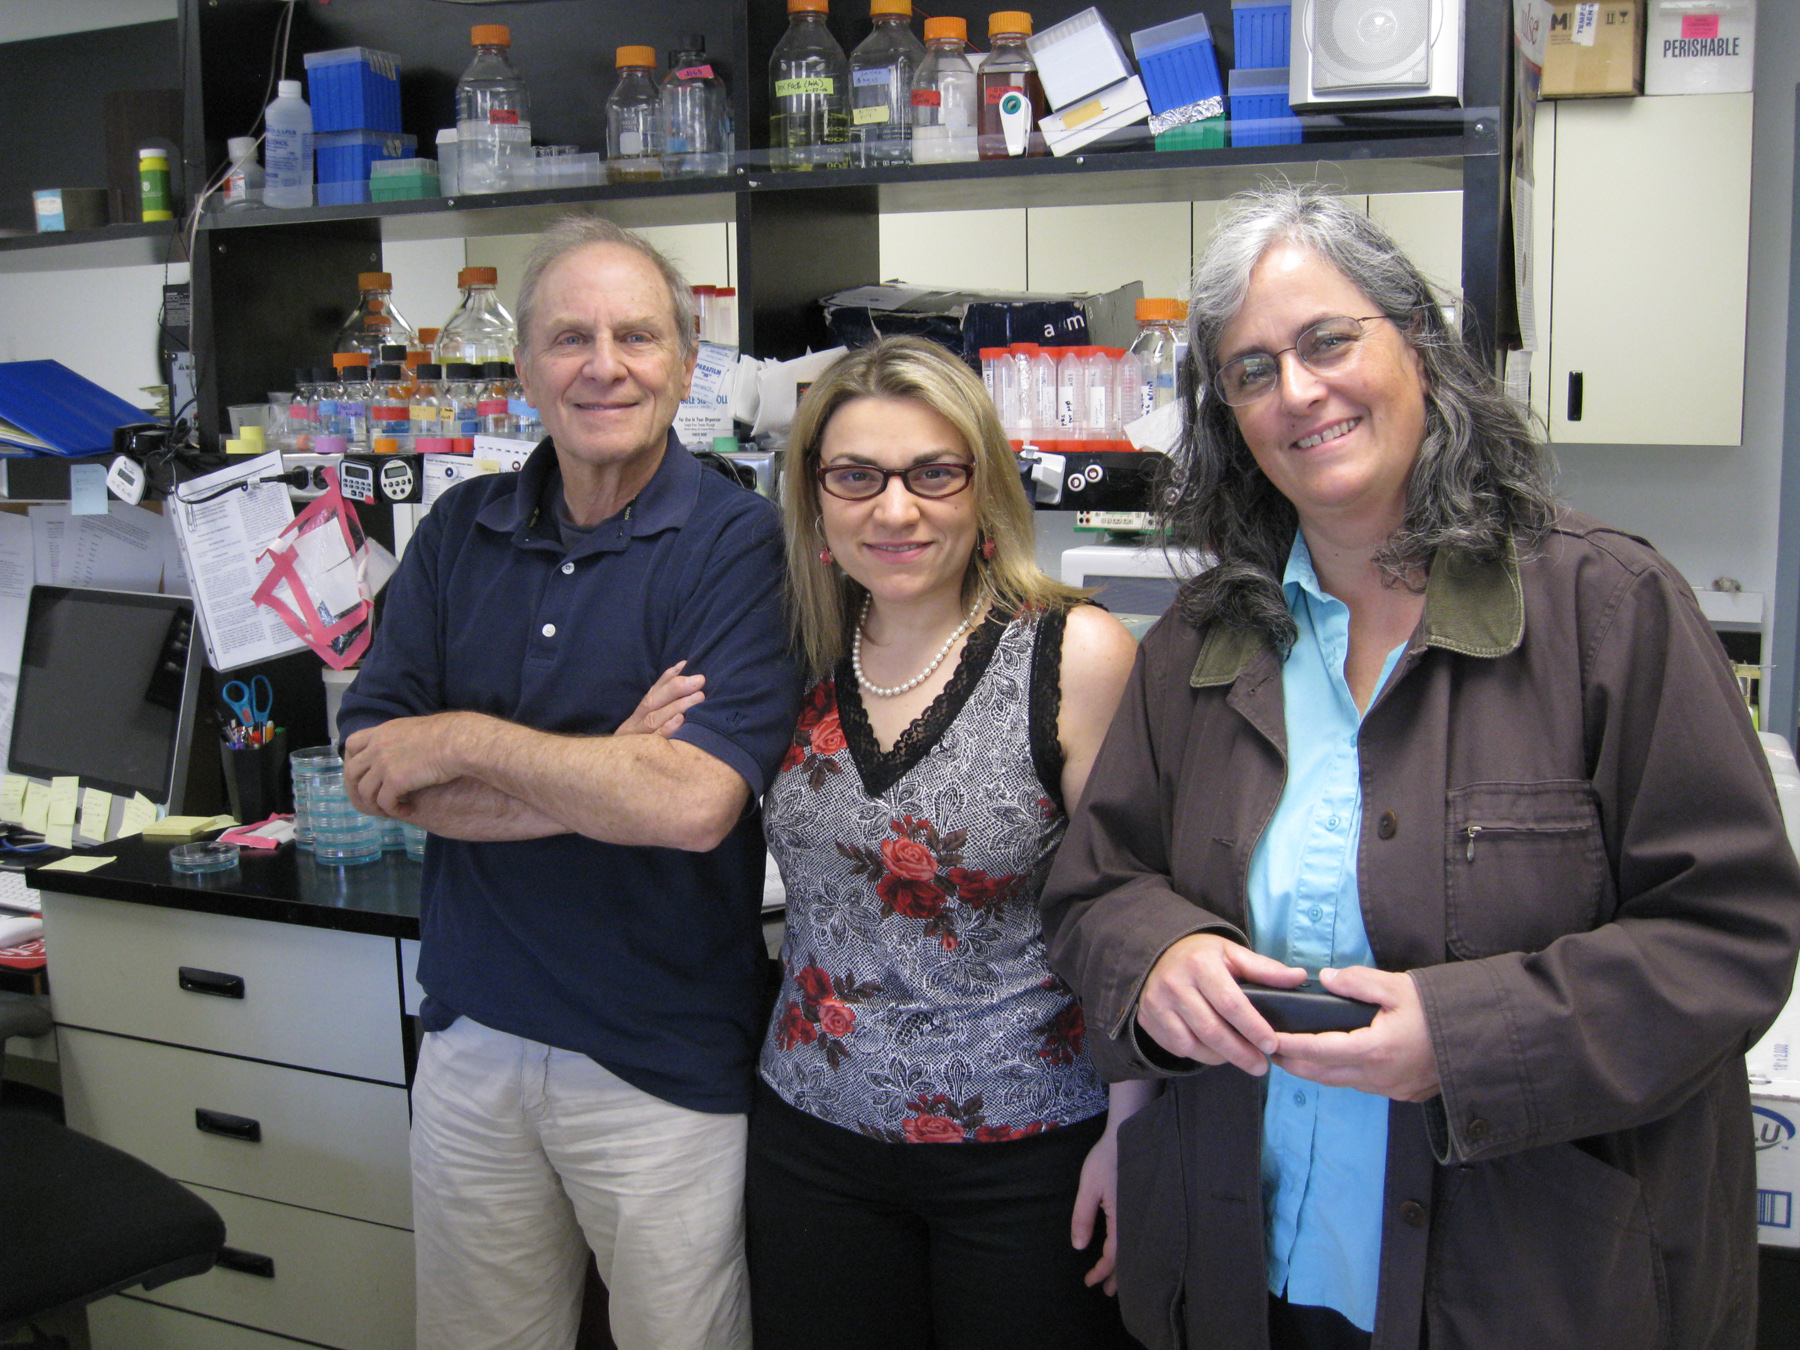 University of Utah molecular biologists Jerry Kaplan, Ivana De Domenico and Diane Ward have made a surprising discovery that hepicidin -- a hormone that helps regulate iron balance in the body -- can prevent deadly inflammation in mice. Their study raises hope that the substance someday might be used to combat a variety of human inflammatory diseases.